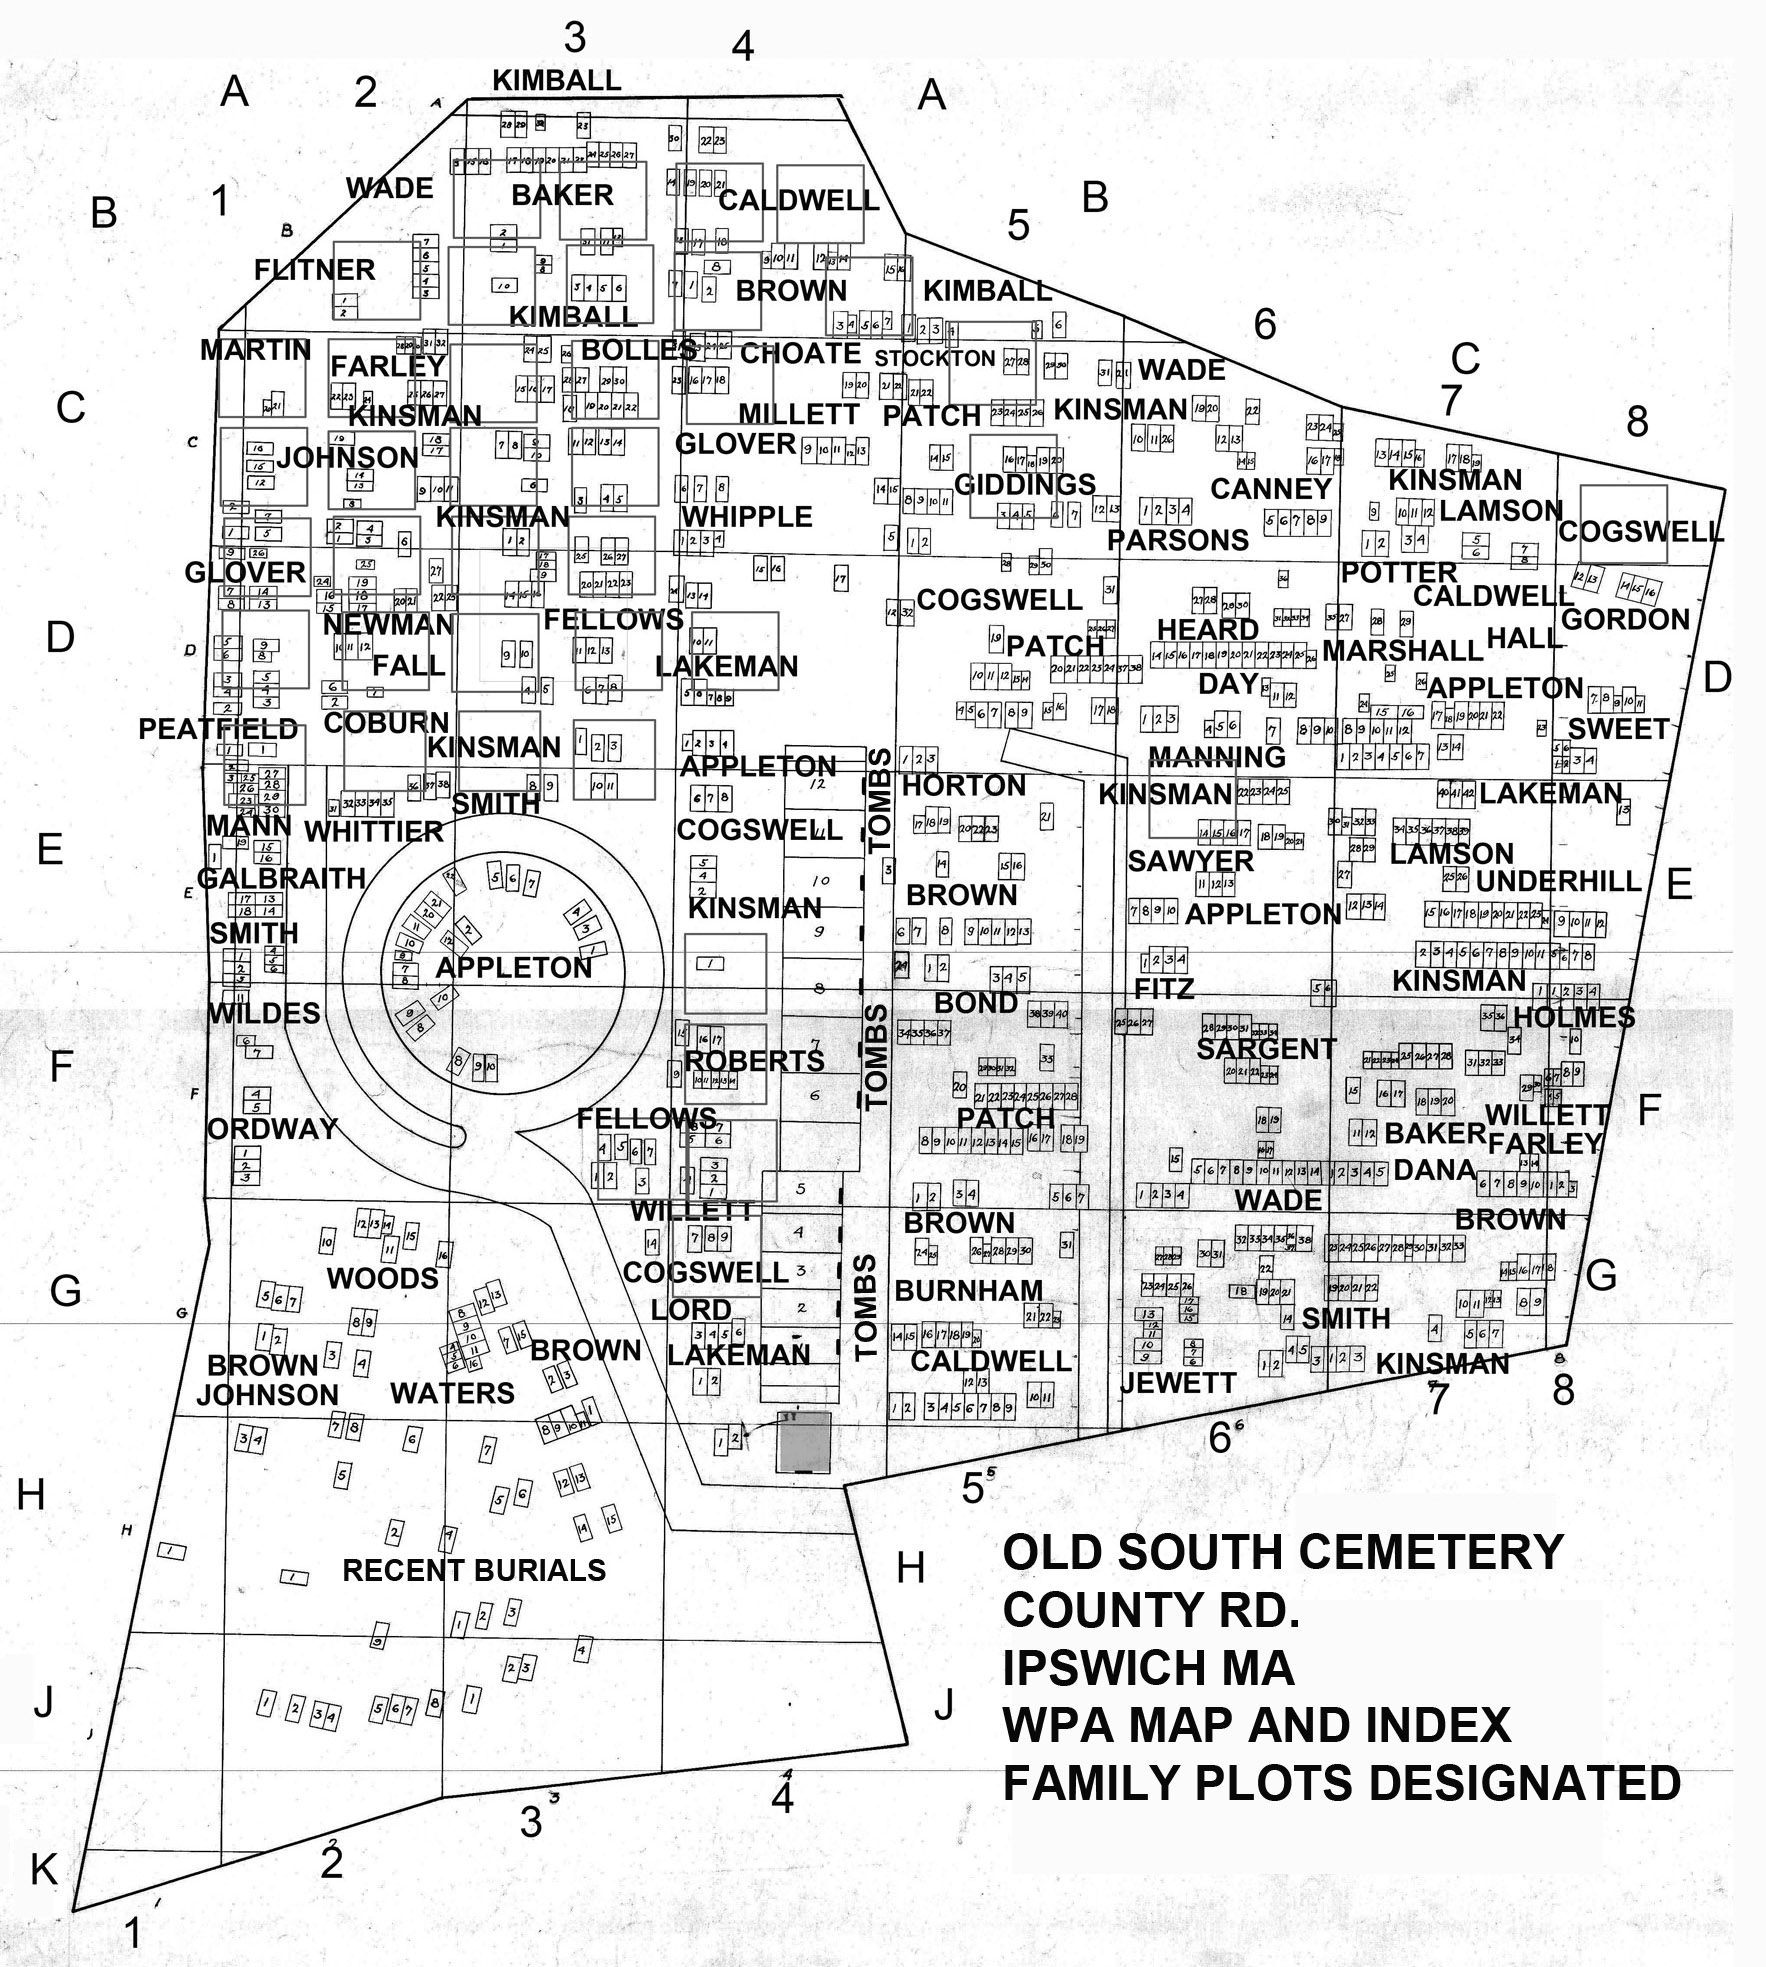 Ipswich Old South Cemetery map